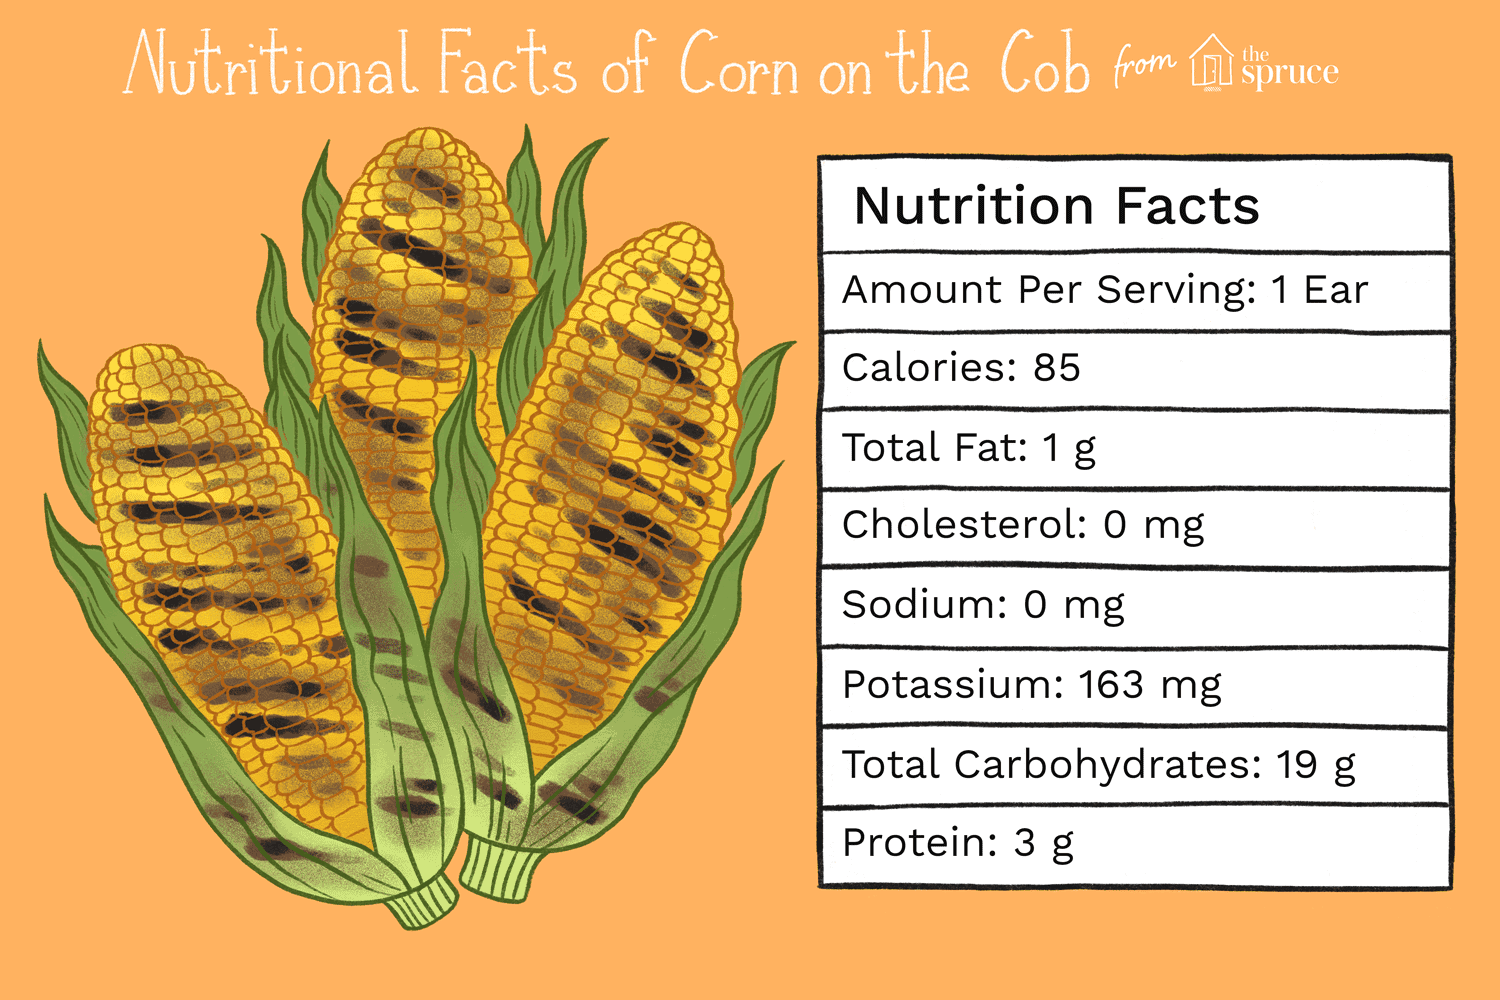 Nutritional facts of corn on the cob